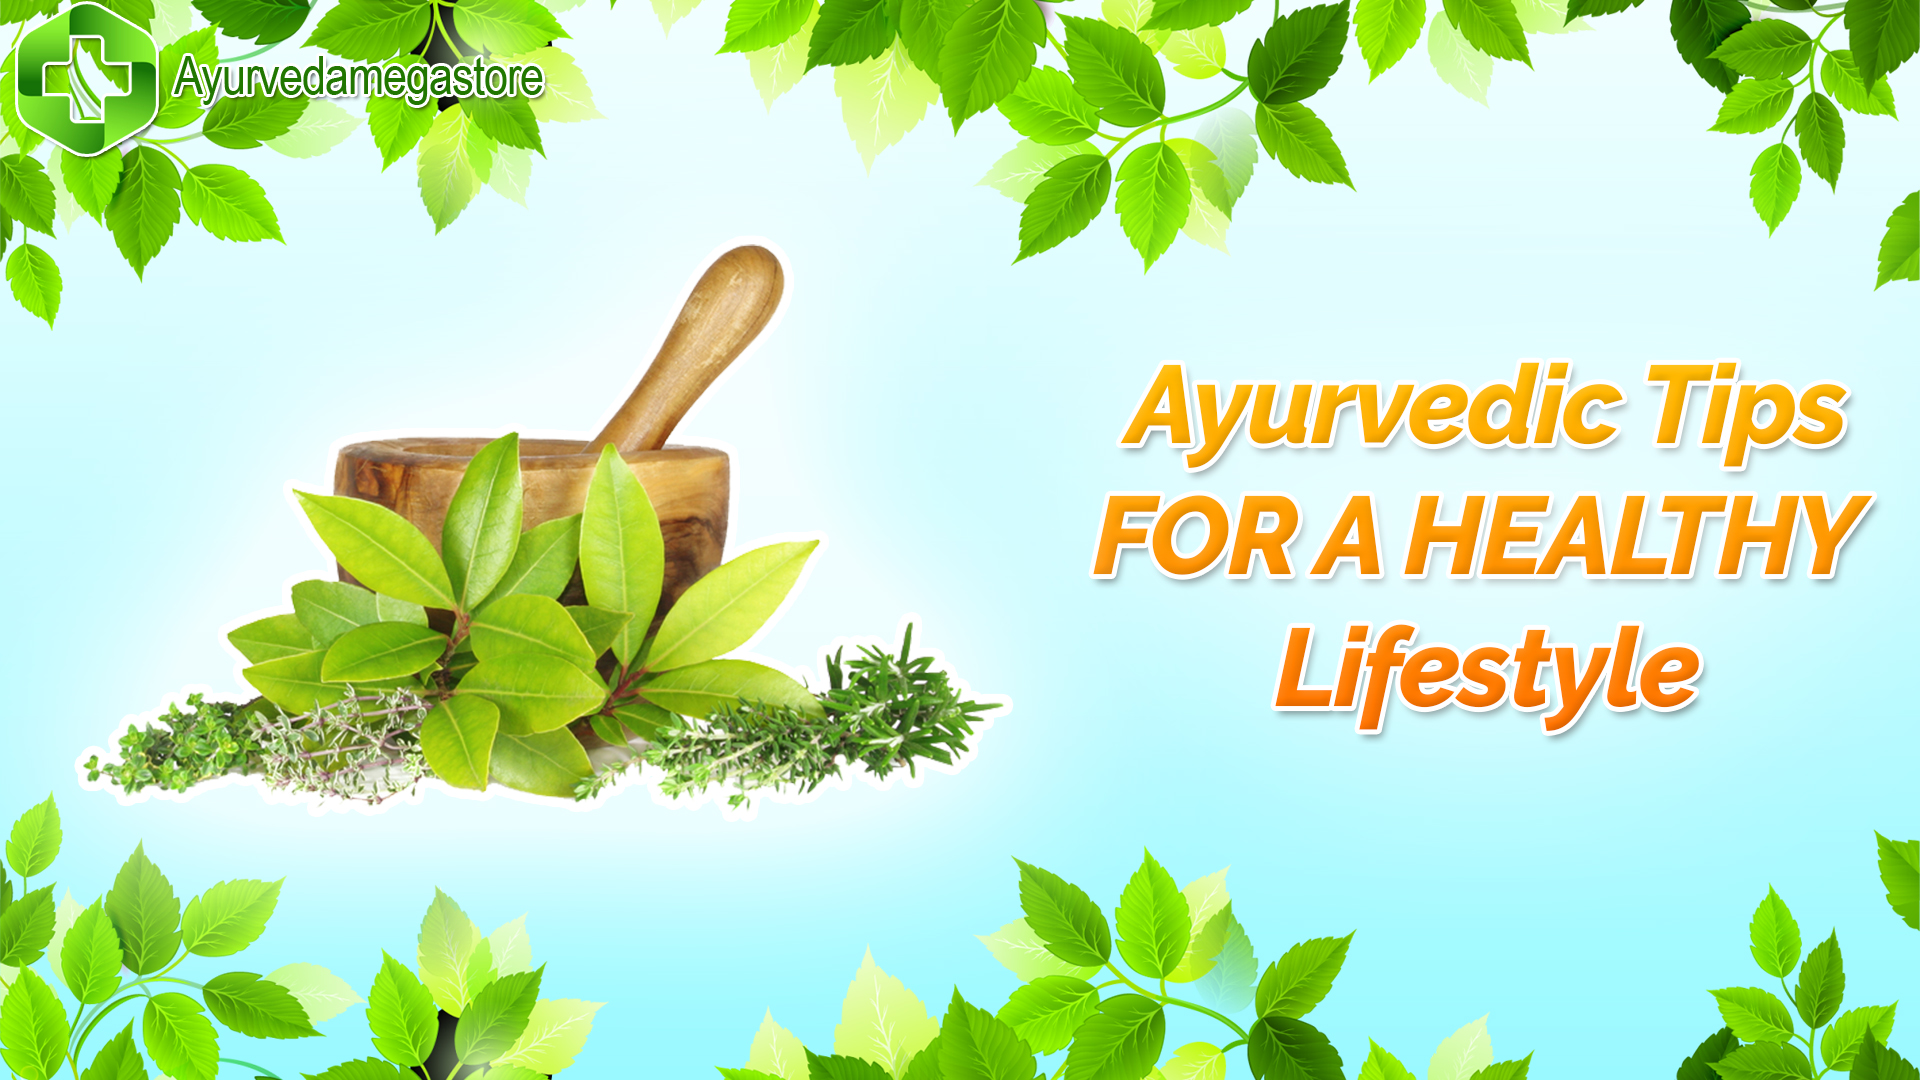 Ten Important Ayurvedic Tips for a Healthy Lifestyle